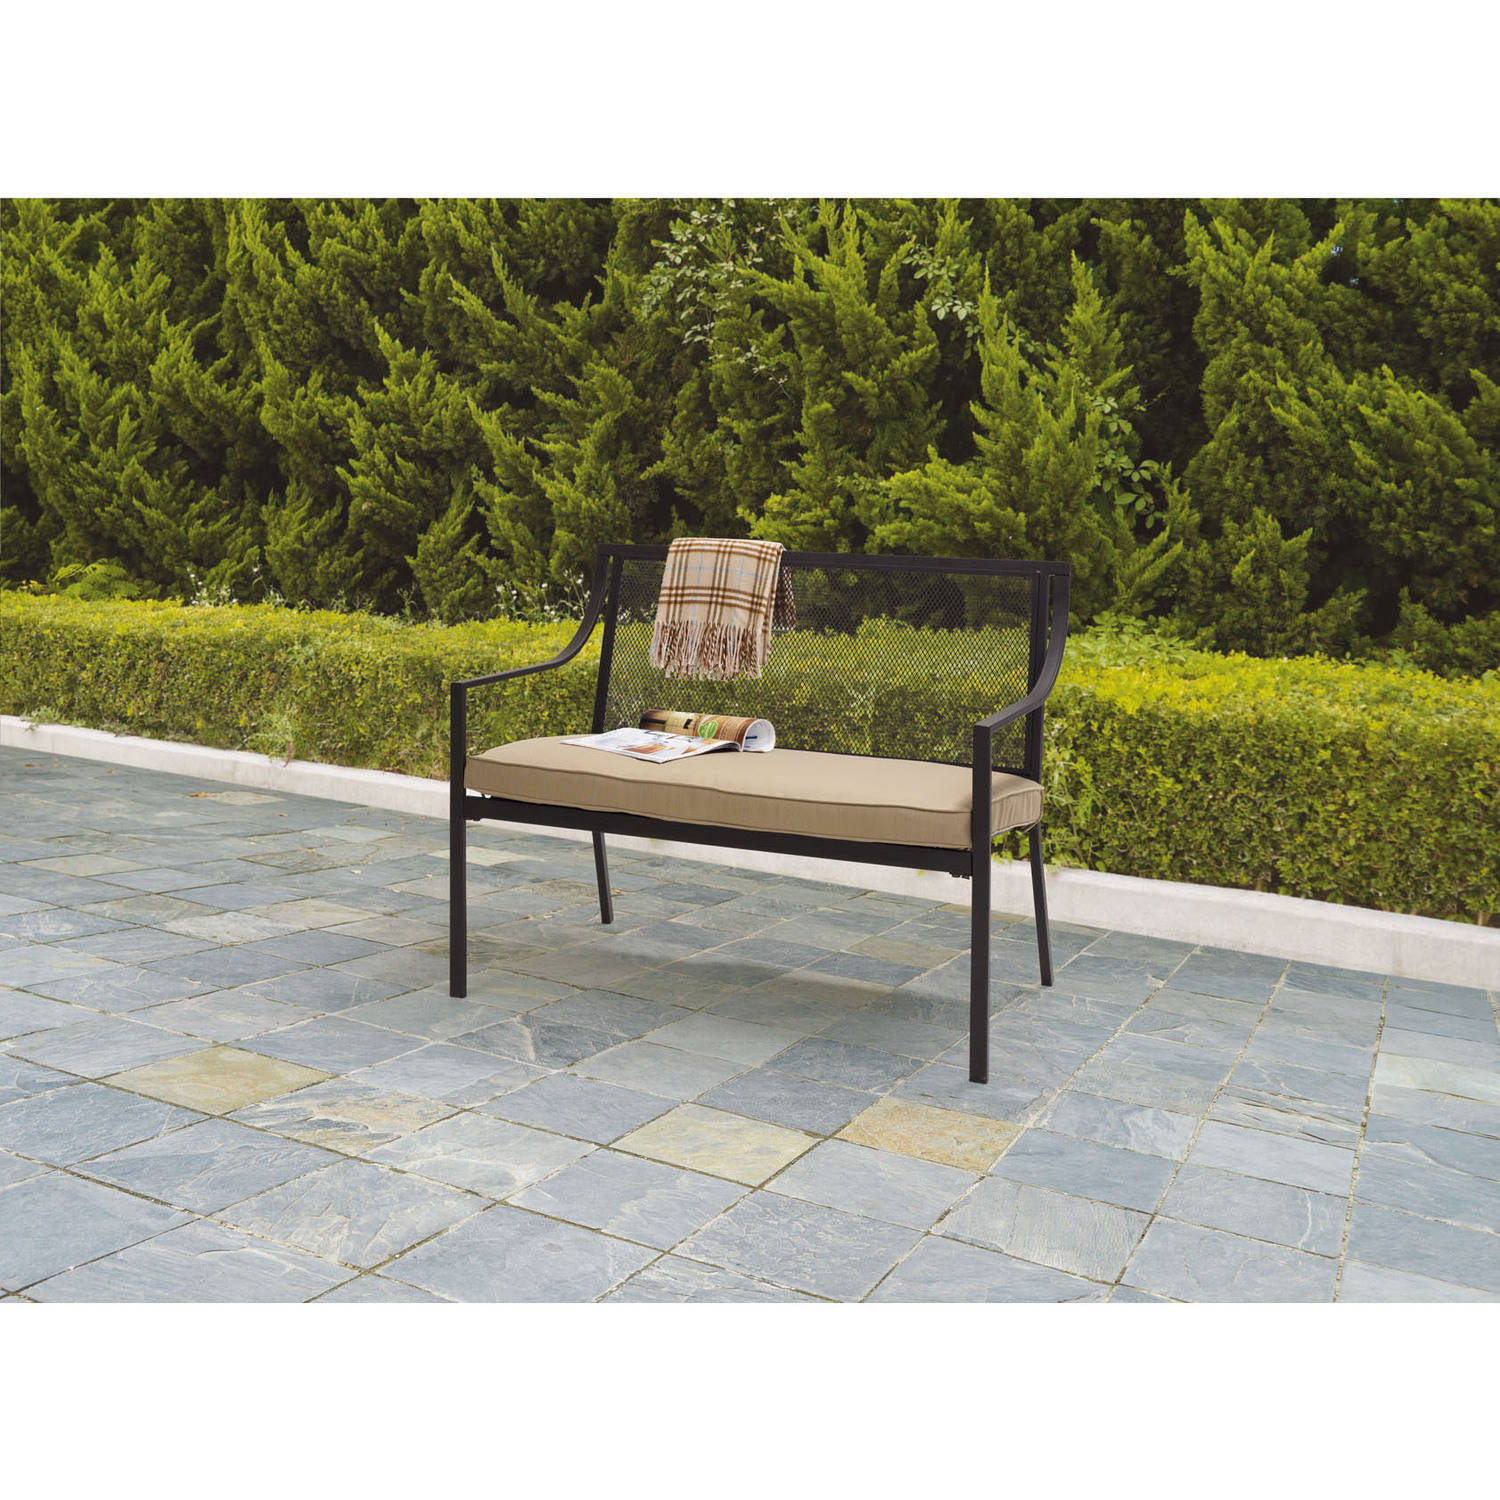 Mainstays Bellingham 2-Seat Outdoor Bench with Cushion, Tan